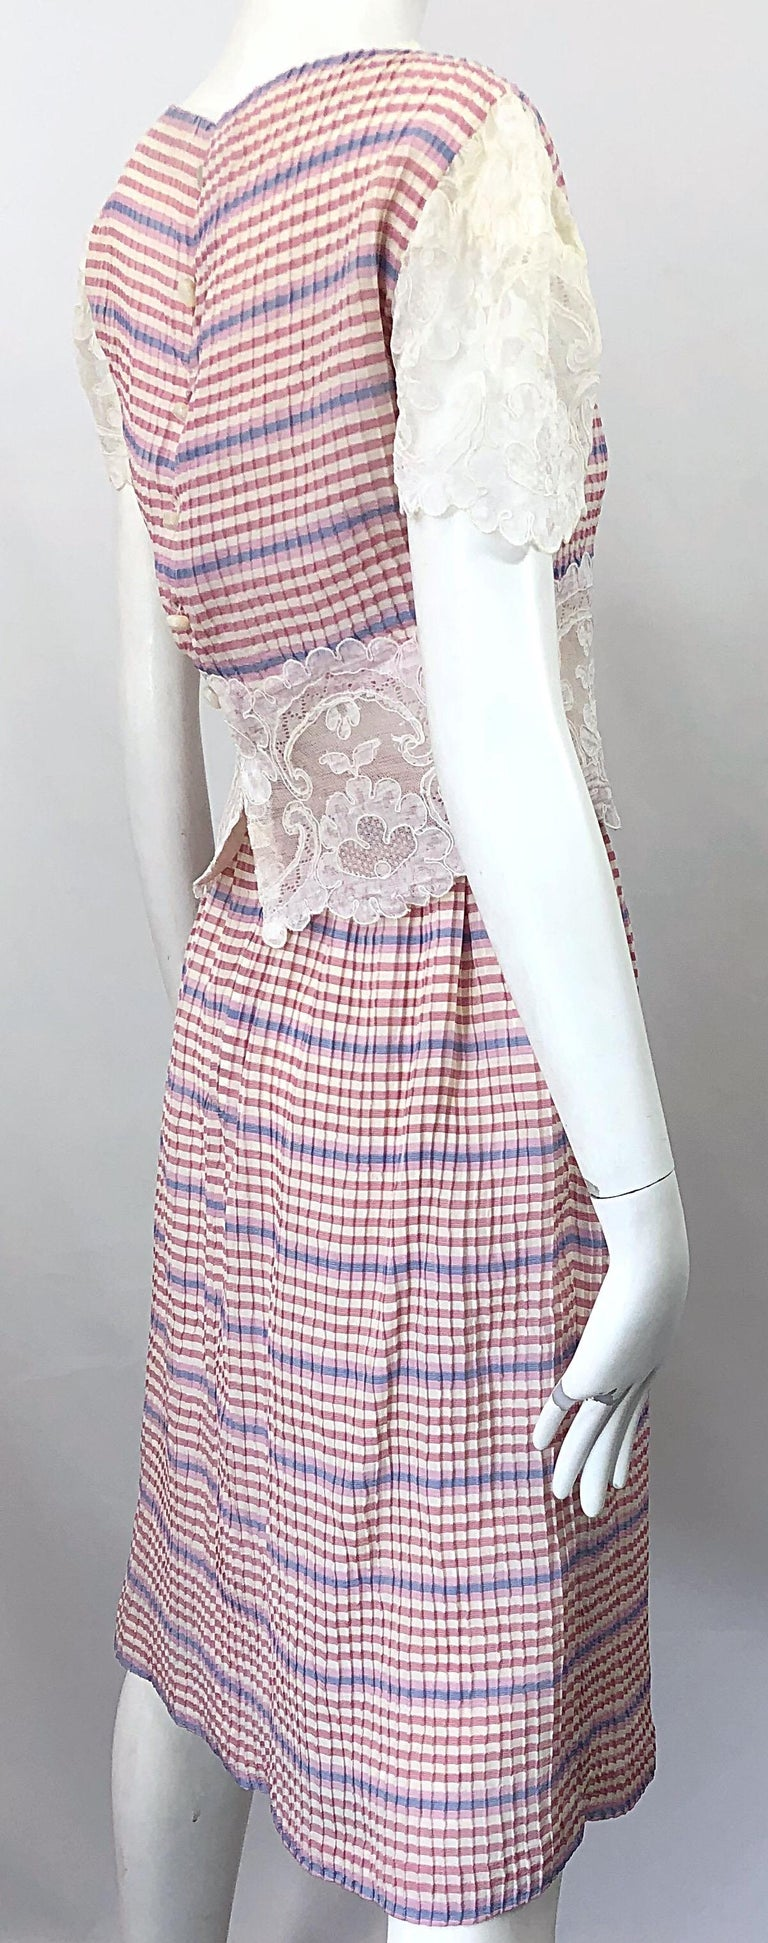 Bob Mackie 1970s Stripes Size 4 Silk + Lace Vintage 70s Crop Top and Skirt Dress For Sale 10